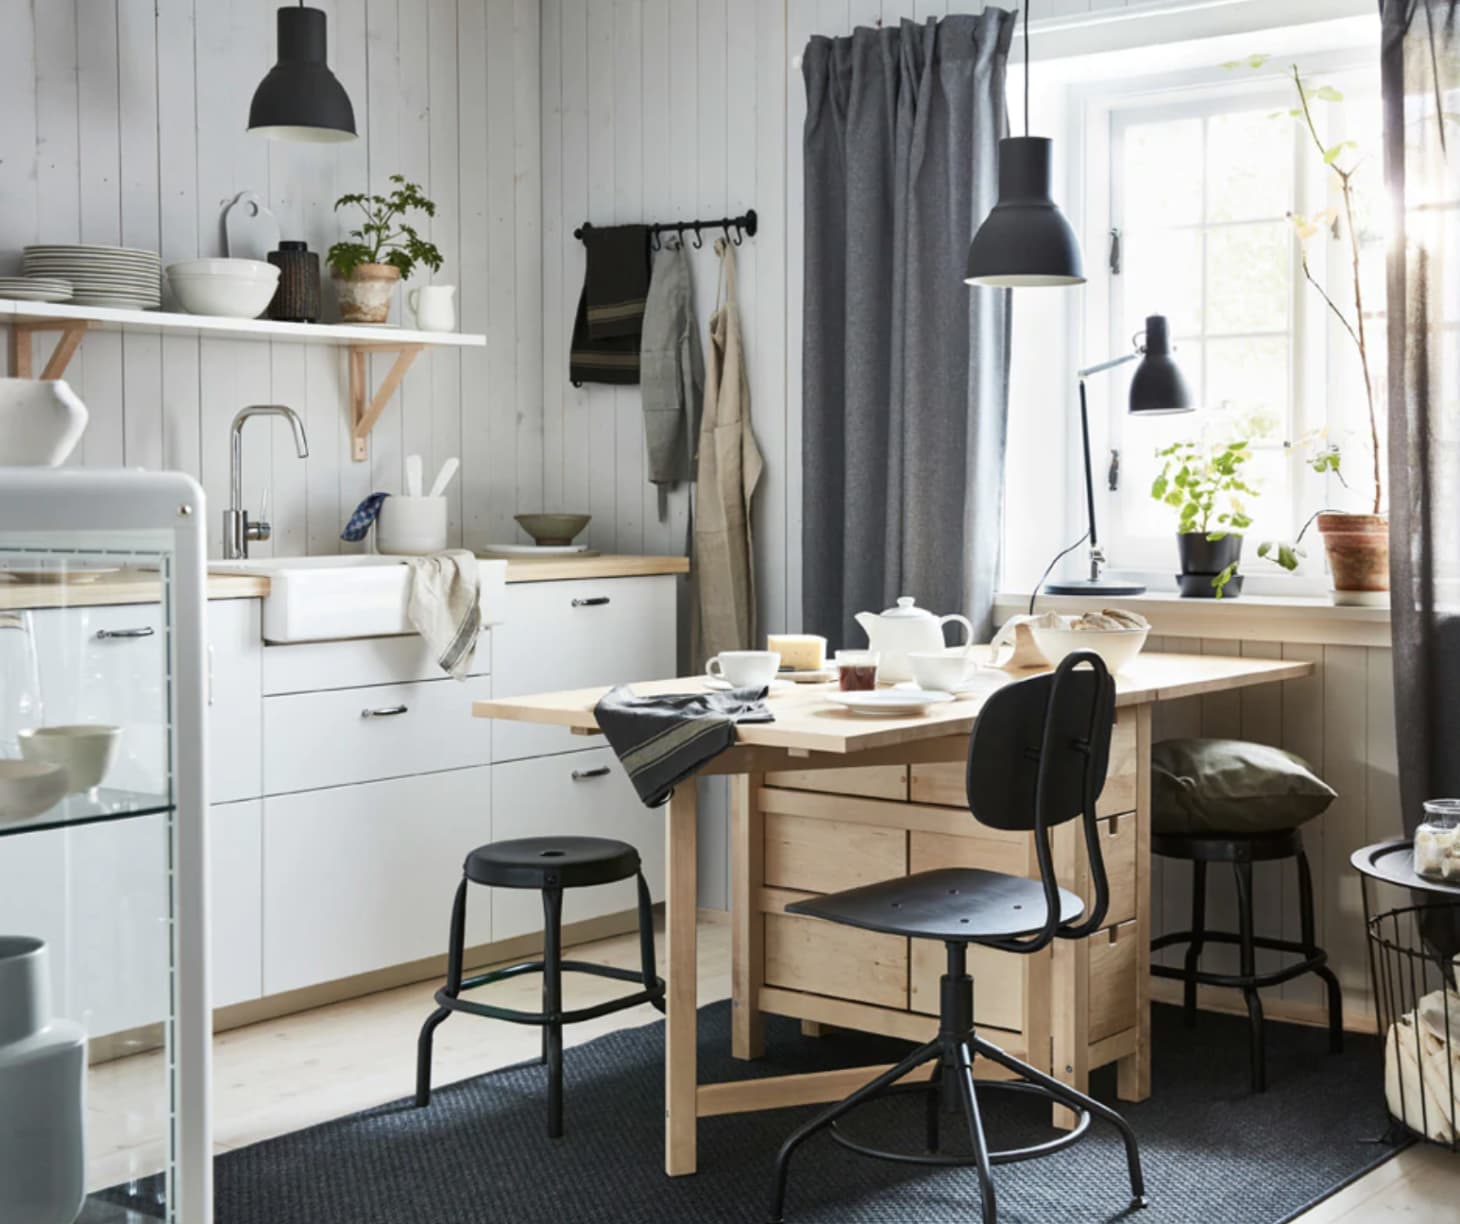 Dining Room Ideas Ikea: Clever Dining Room Design Ideas To Steal From IKEA